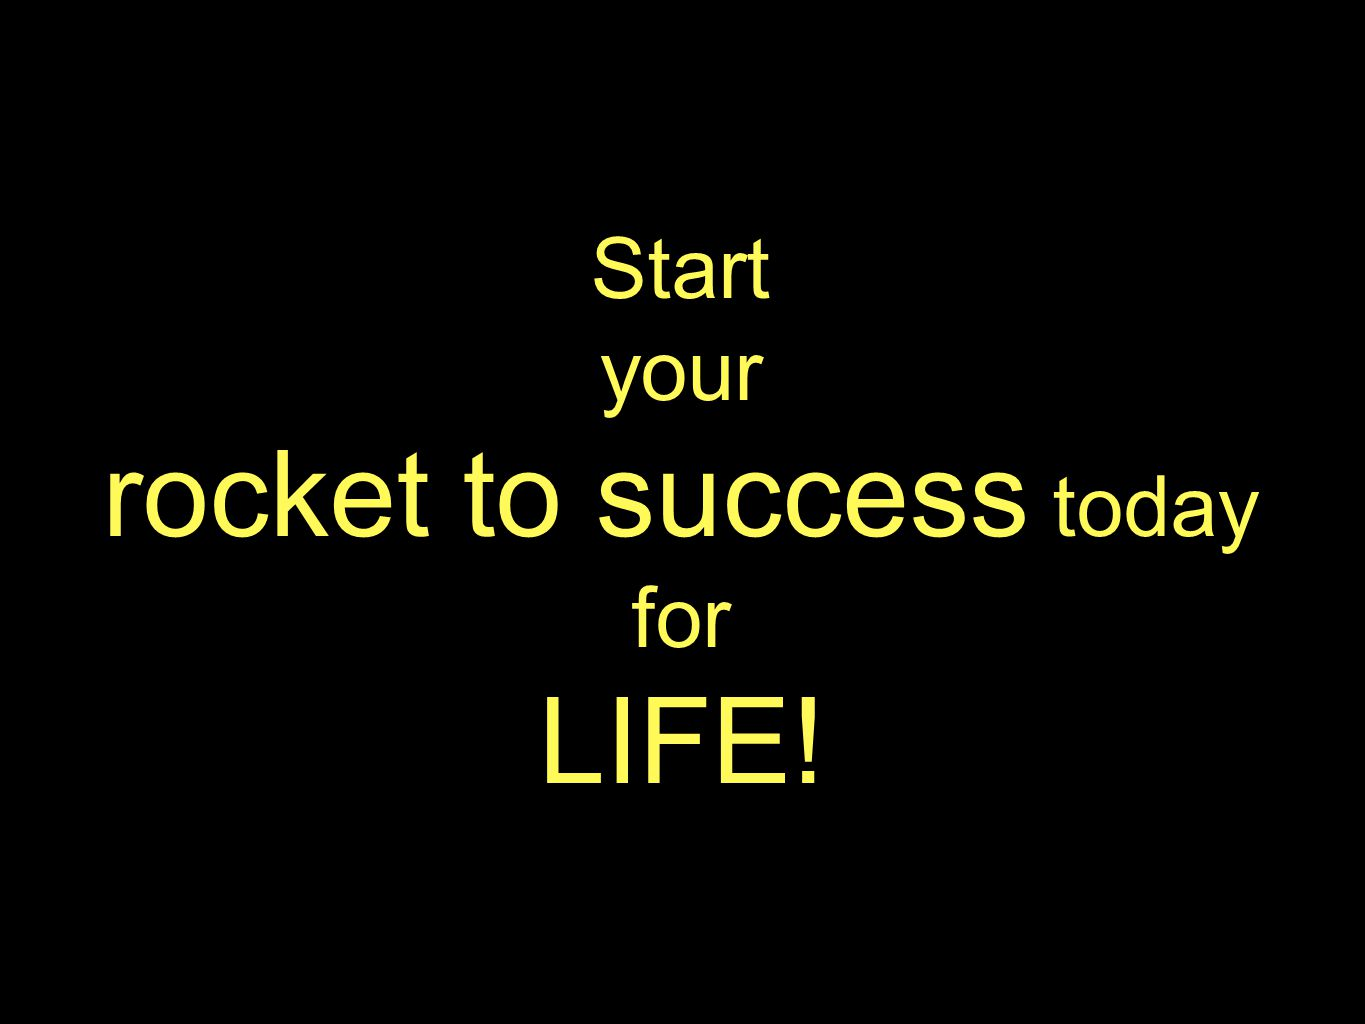 Start your rocket to success today for LIFE!